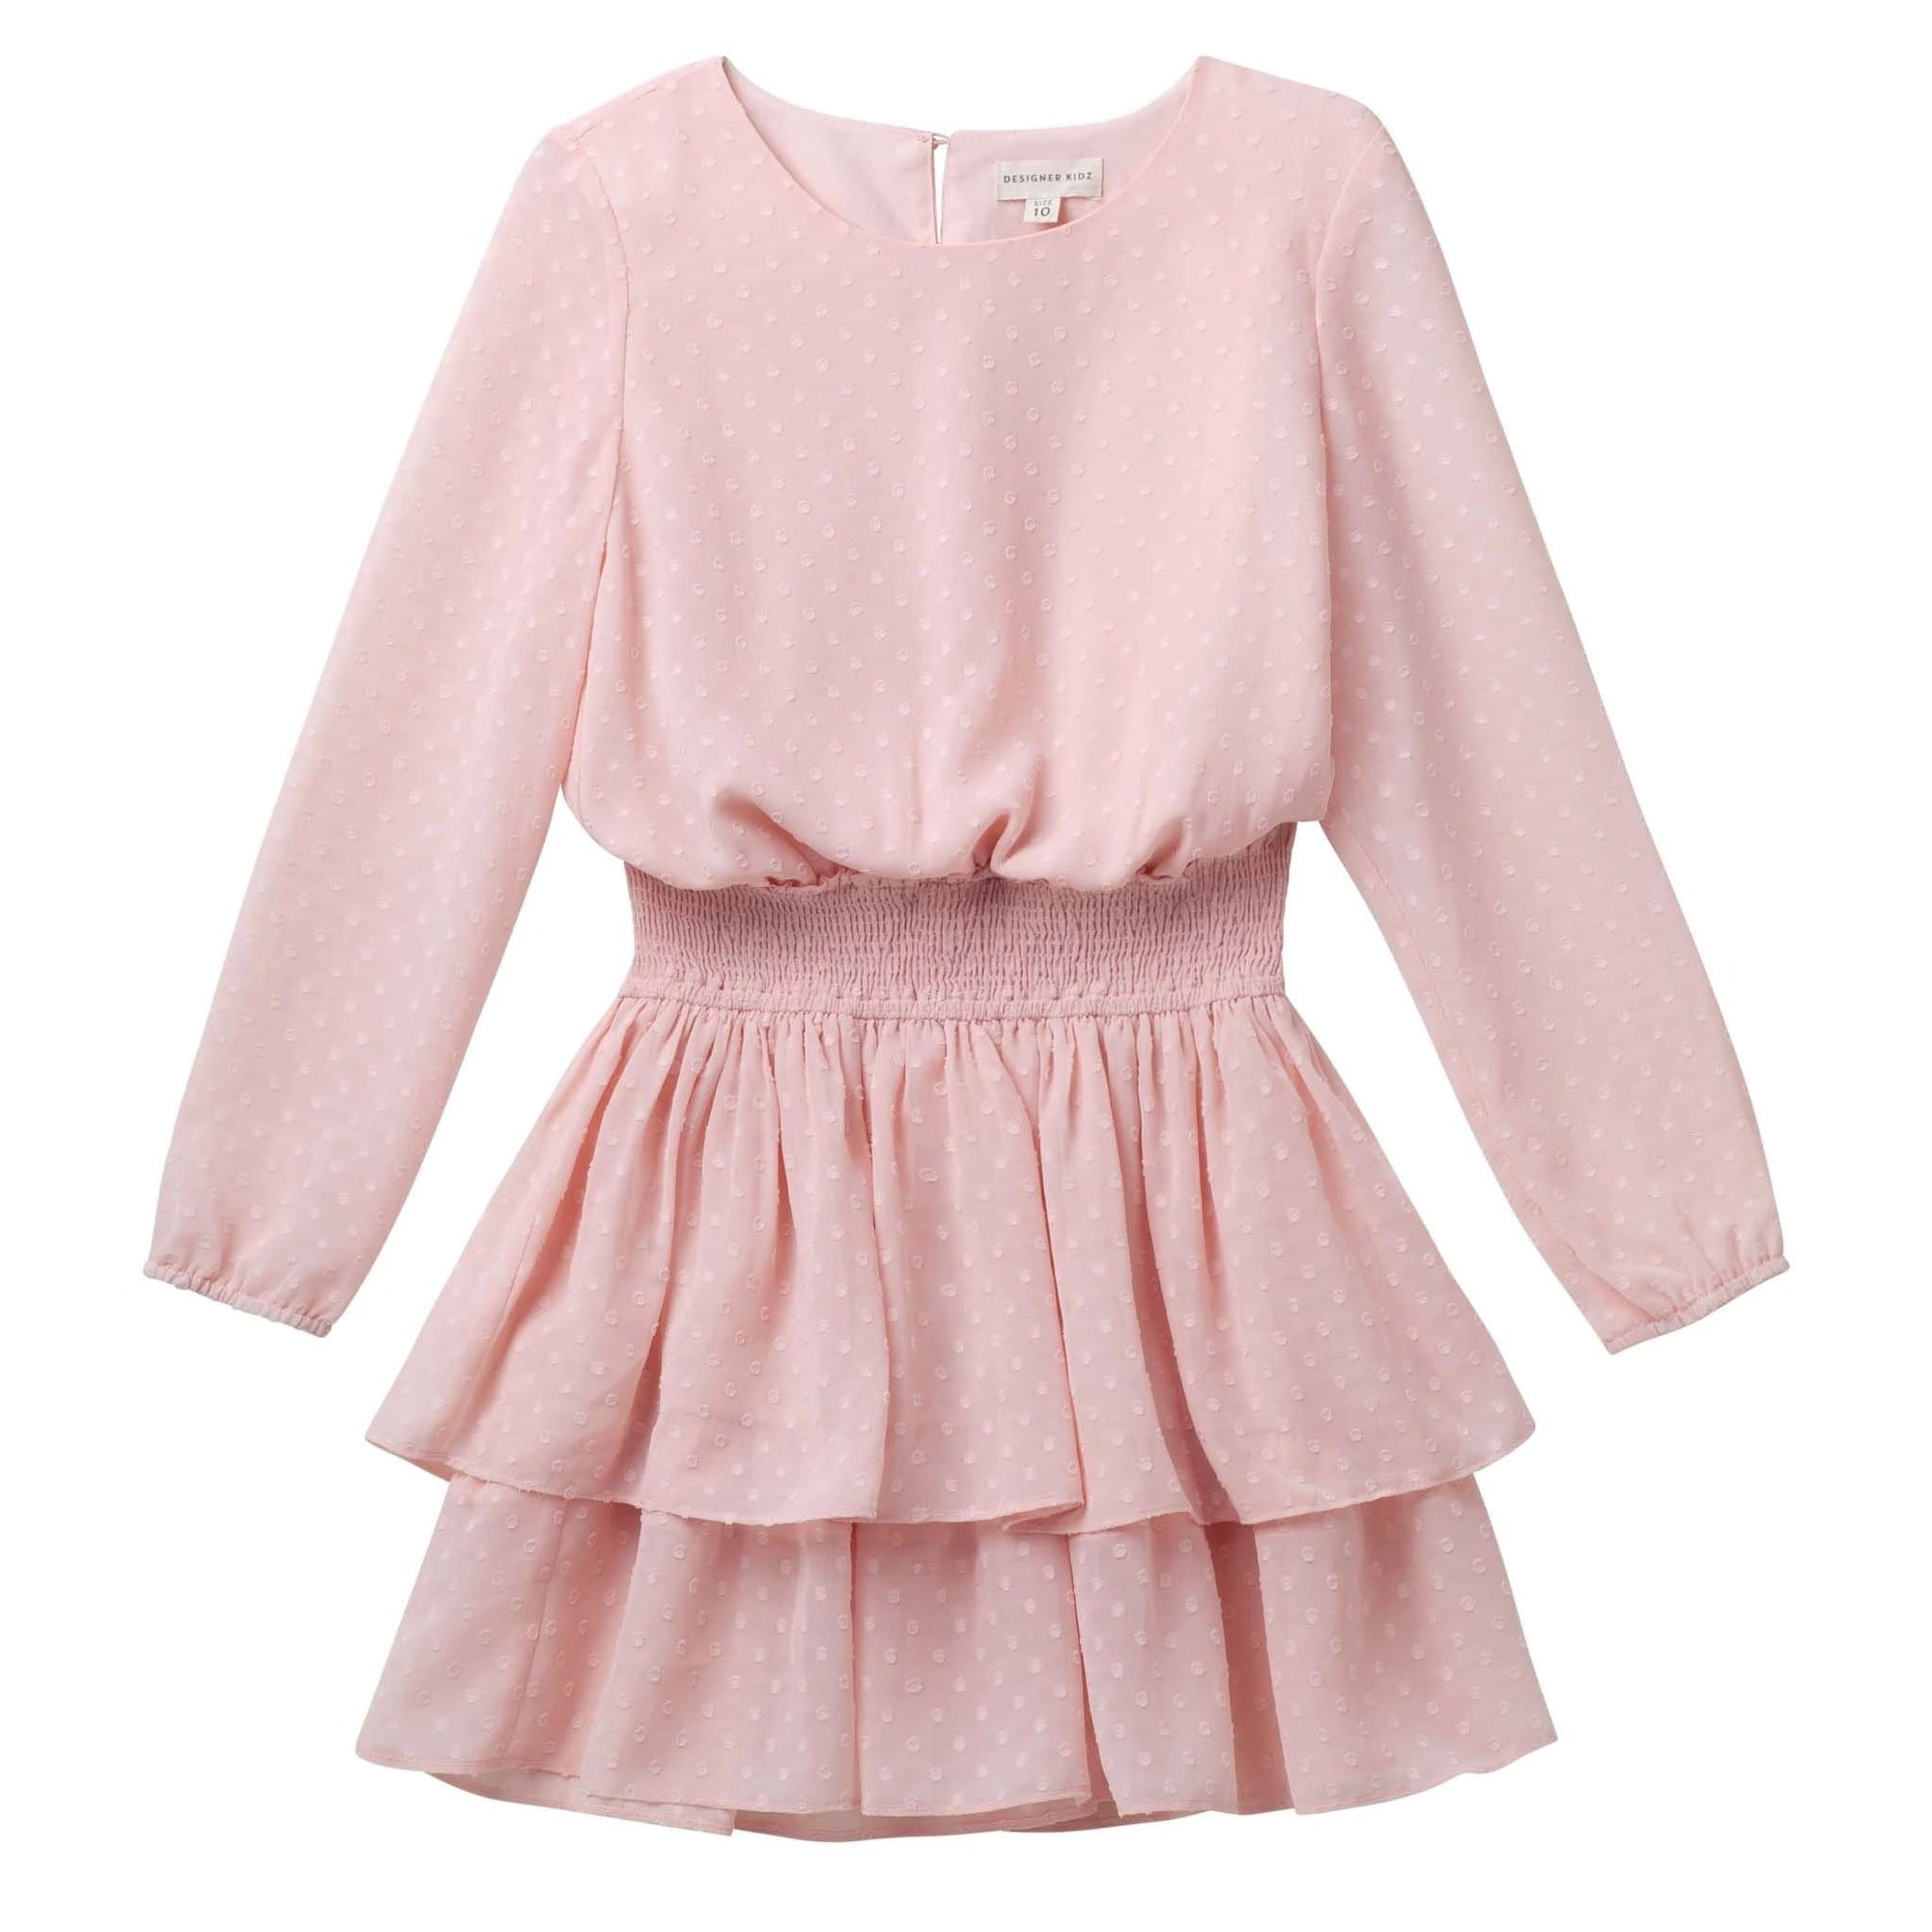 Designer Kidz Willow L/S Spot Dress - Pink